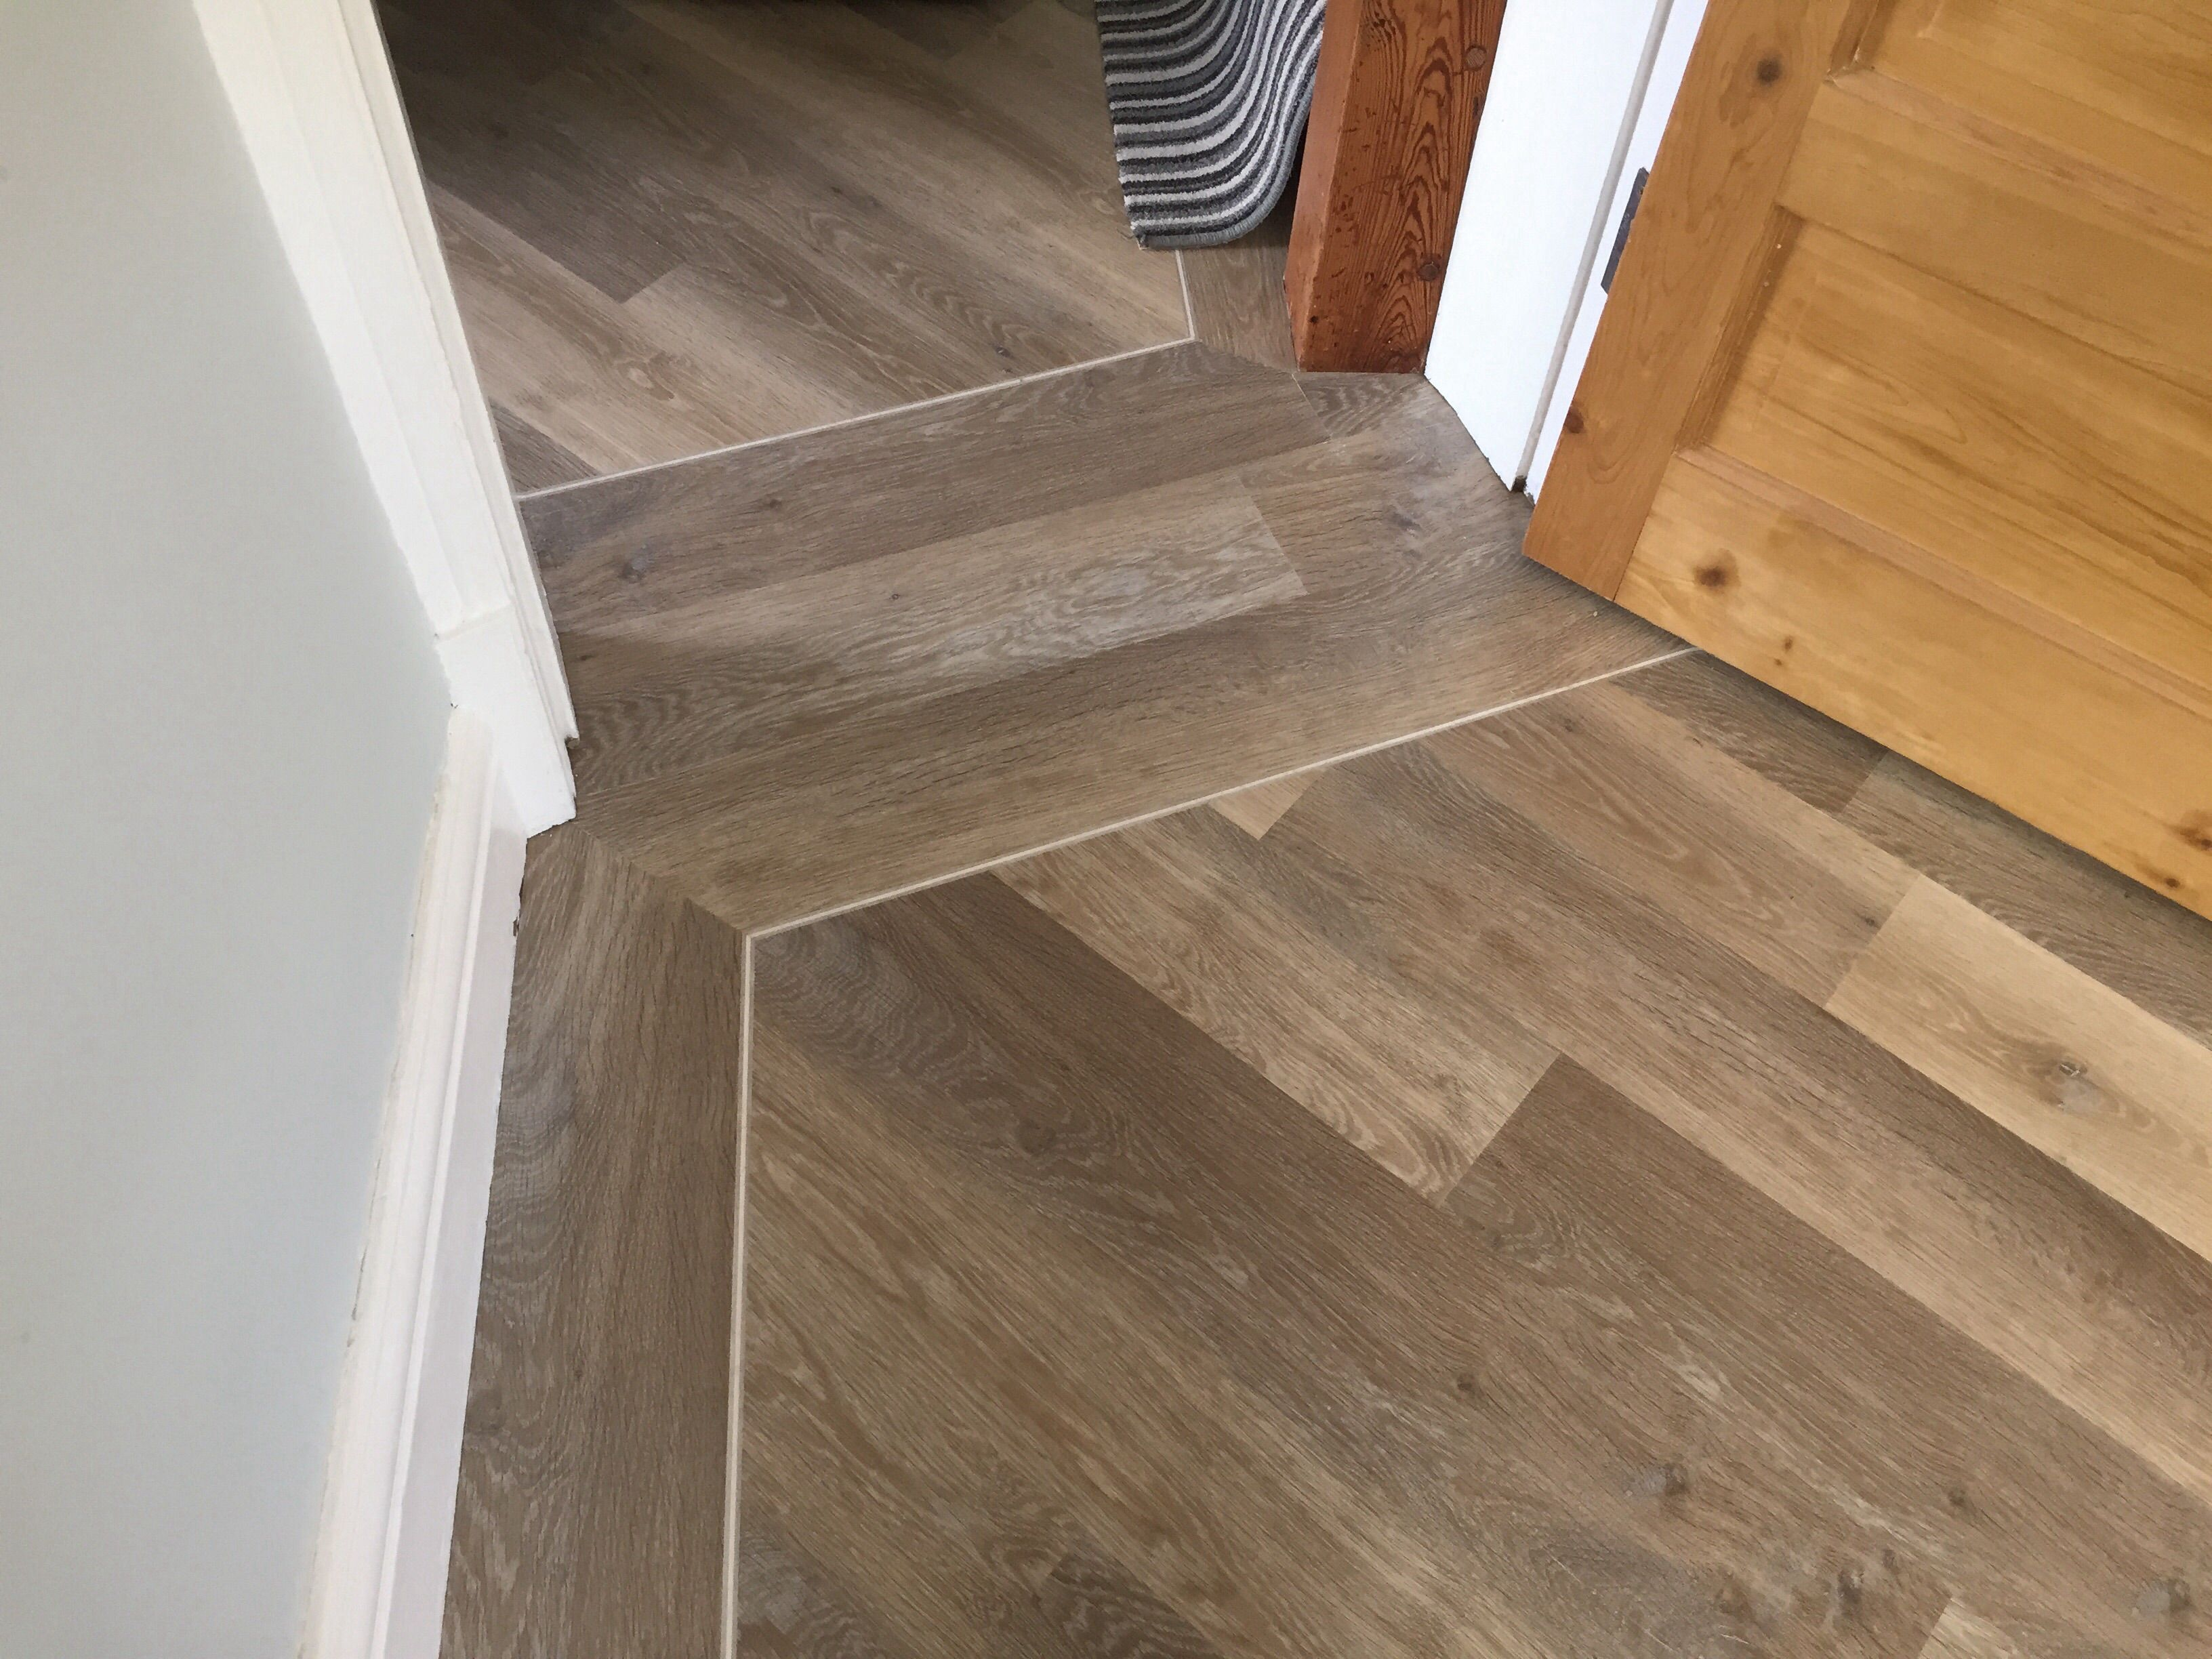 fitters img company services glasgow flooring suppliers floor